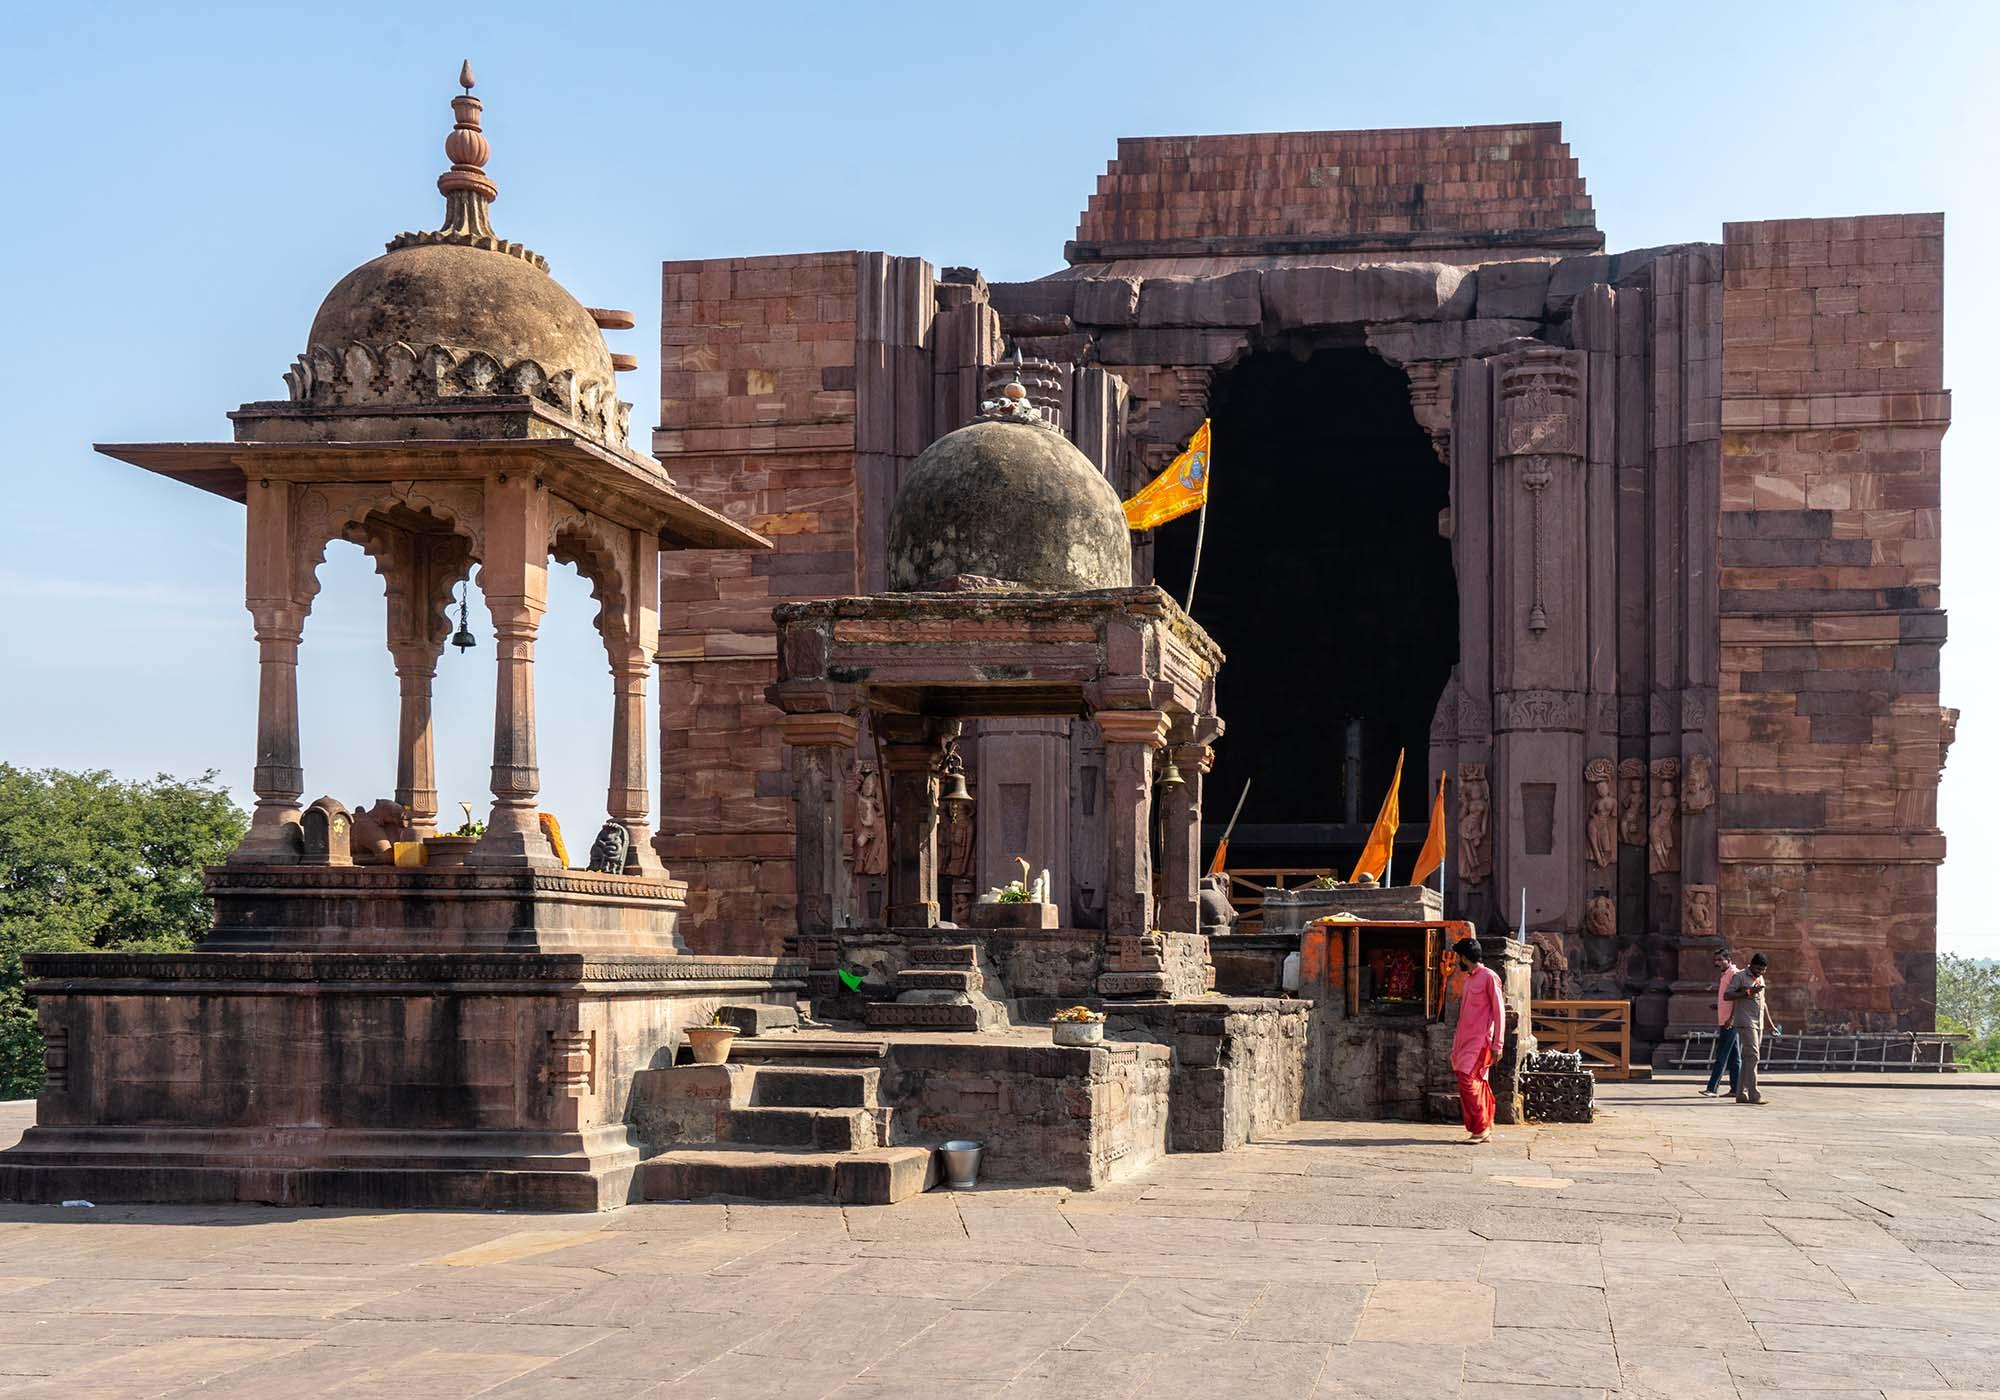 The Bhojeshwar Temple at Bhojpur was built in the 12th century and is one of the finest Hindu temples in the region. – © Michael Turtle